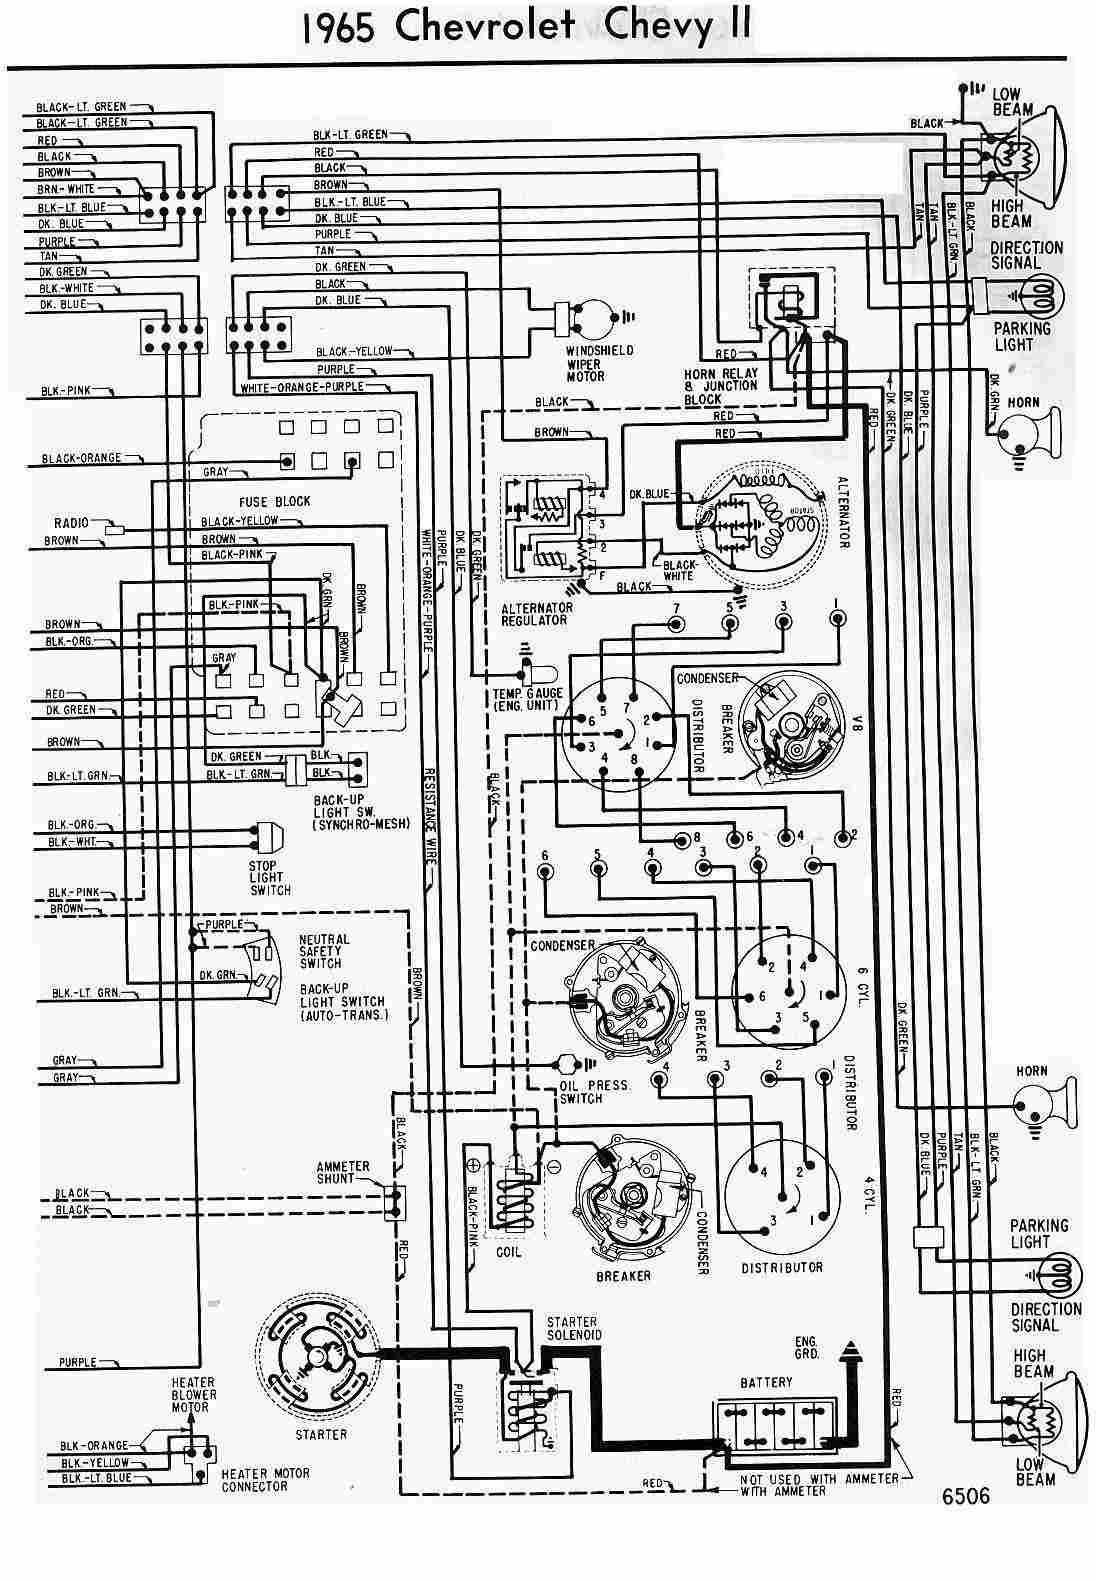 small resolution of 1971 chevy nova wiring diagram on 1975 chevy truck wiring diagram75 nova wiring basic electronics wiring